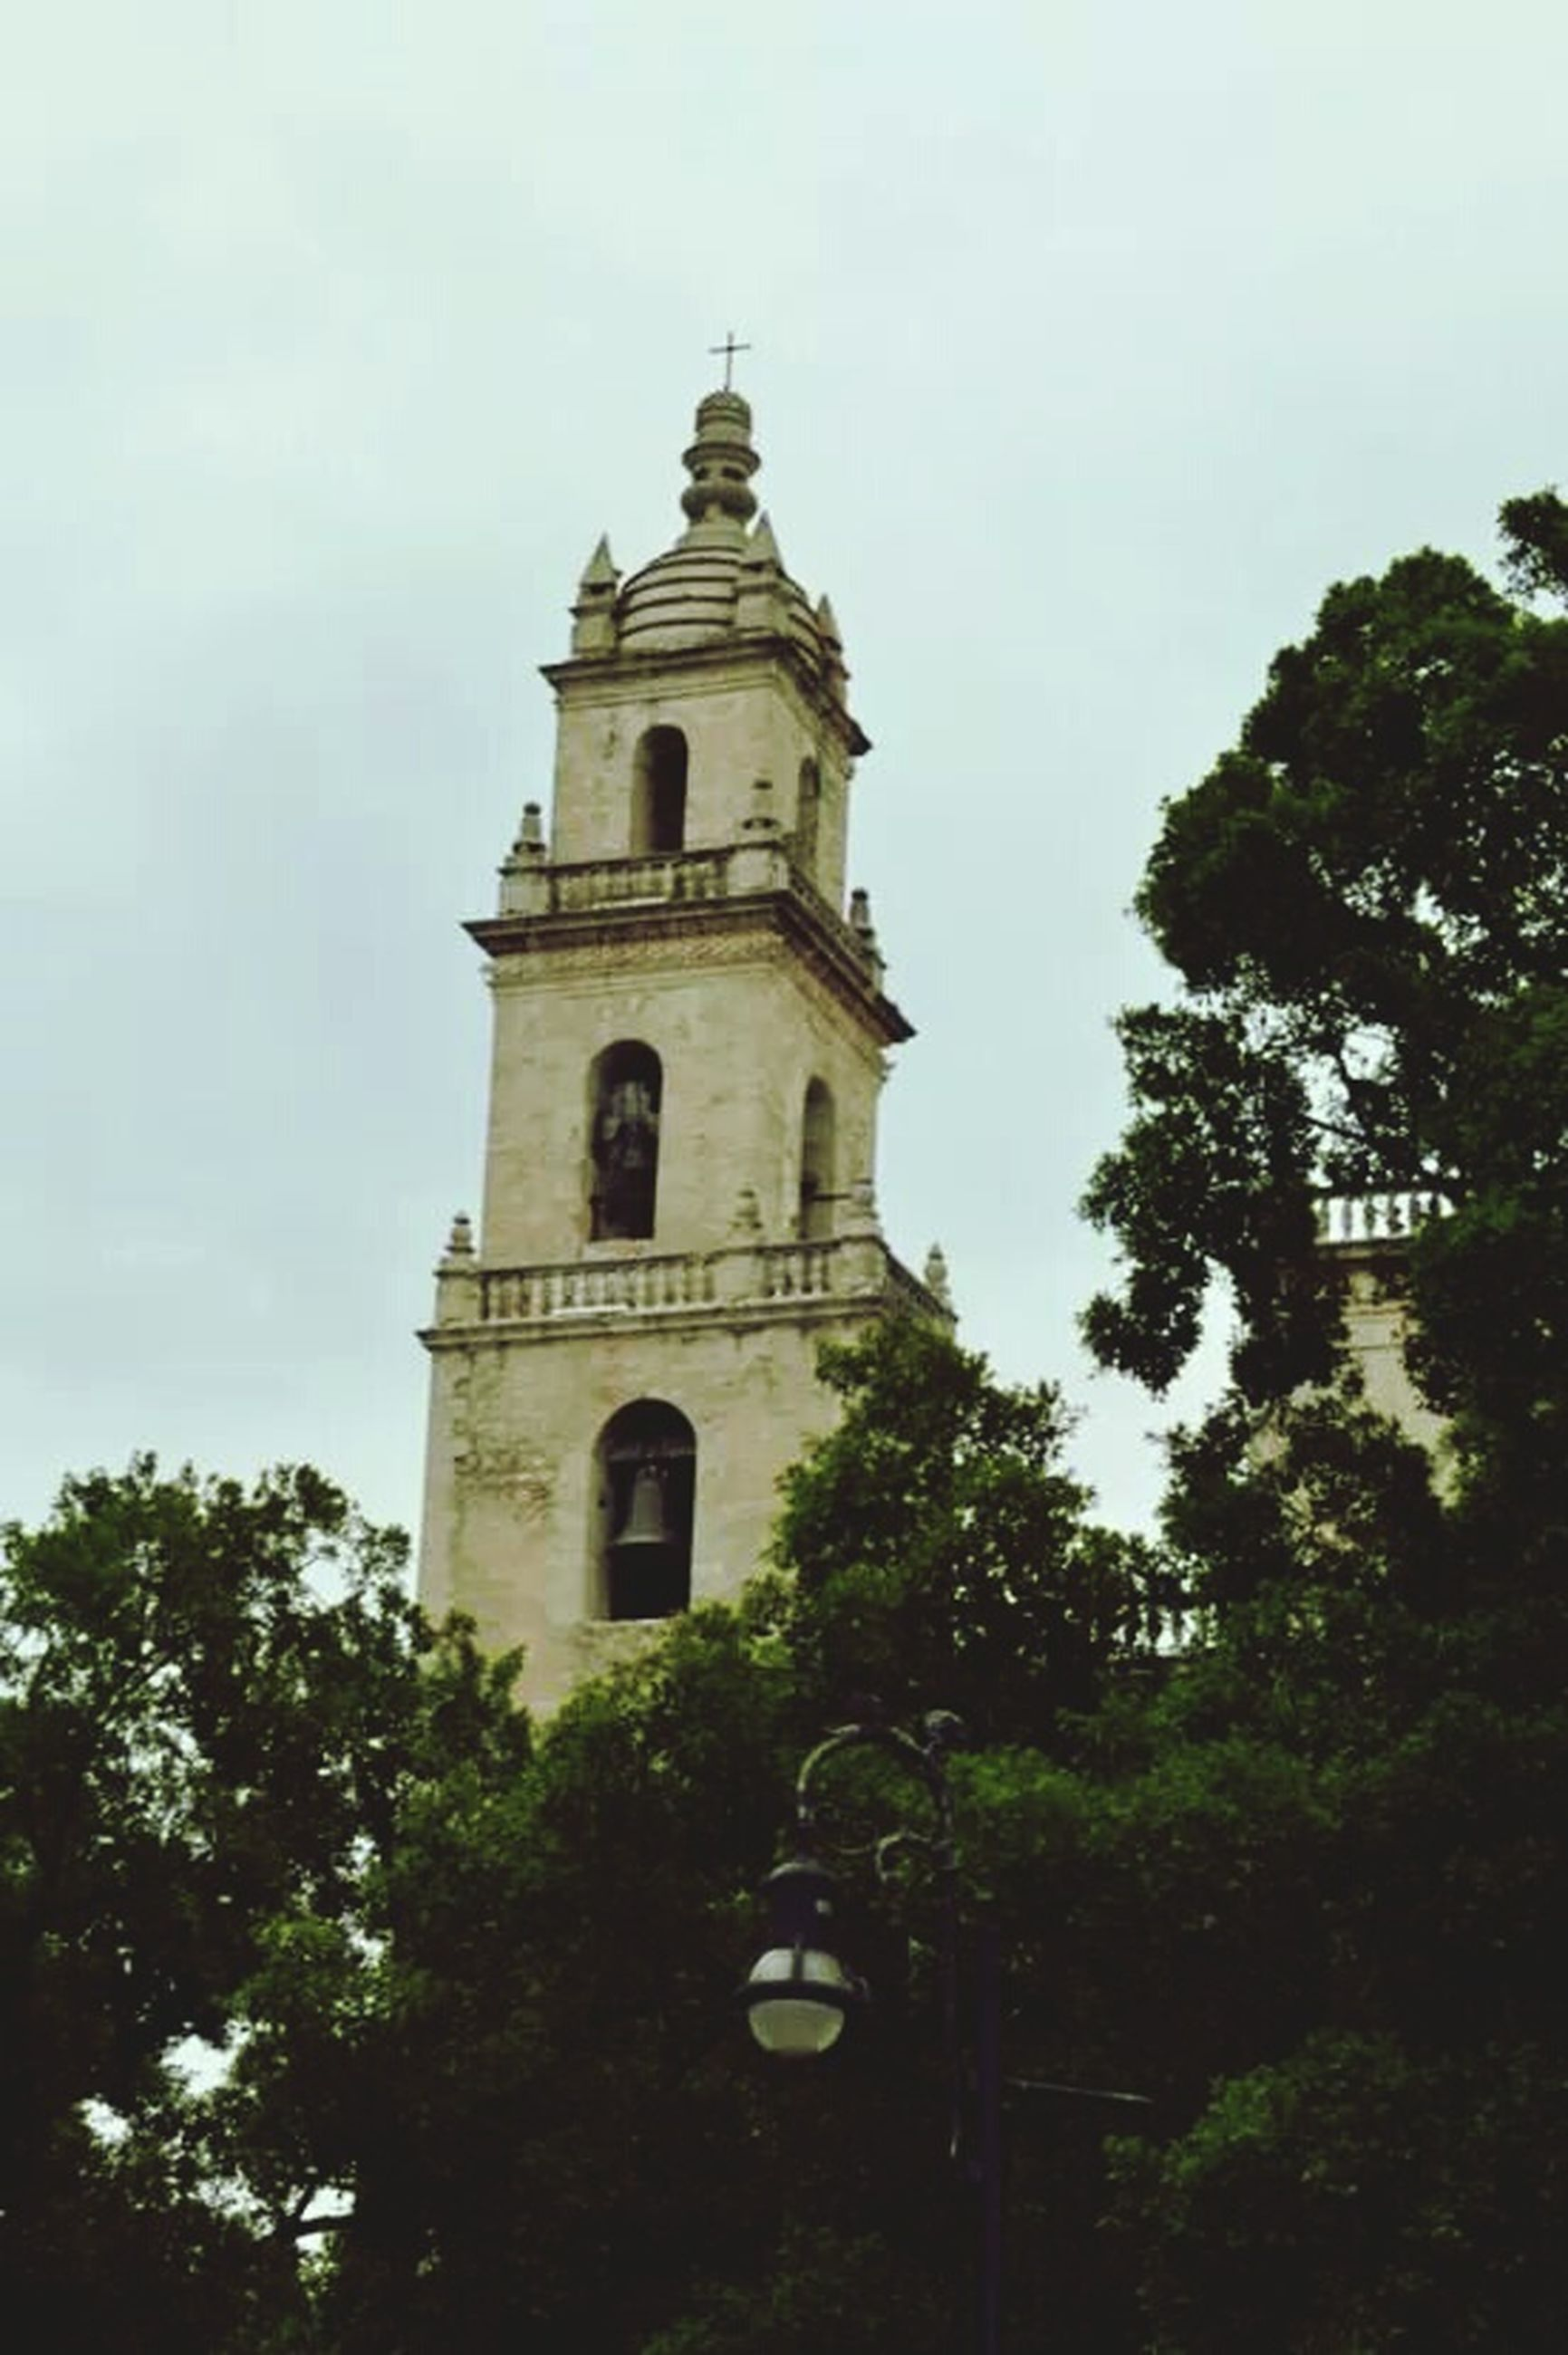 low angle view, architecture, tree, building exterior, built structure, sky, tower, clock tower, religion, history, tall - high, day, place of worship, outdoors, famous place, growth, no people, travel destinations, clear sky